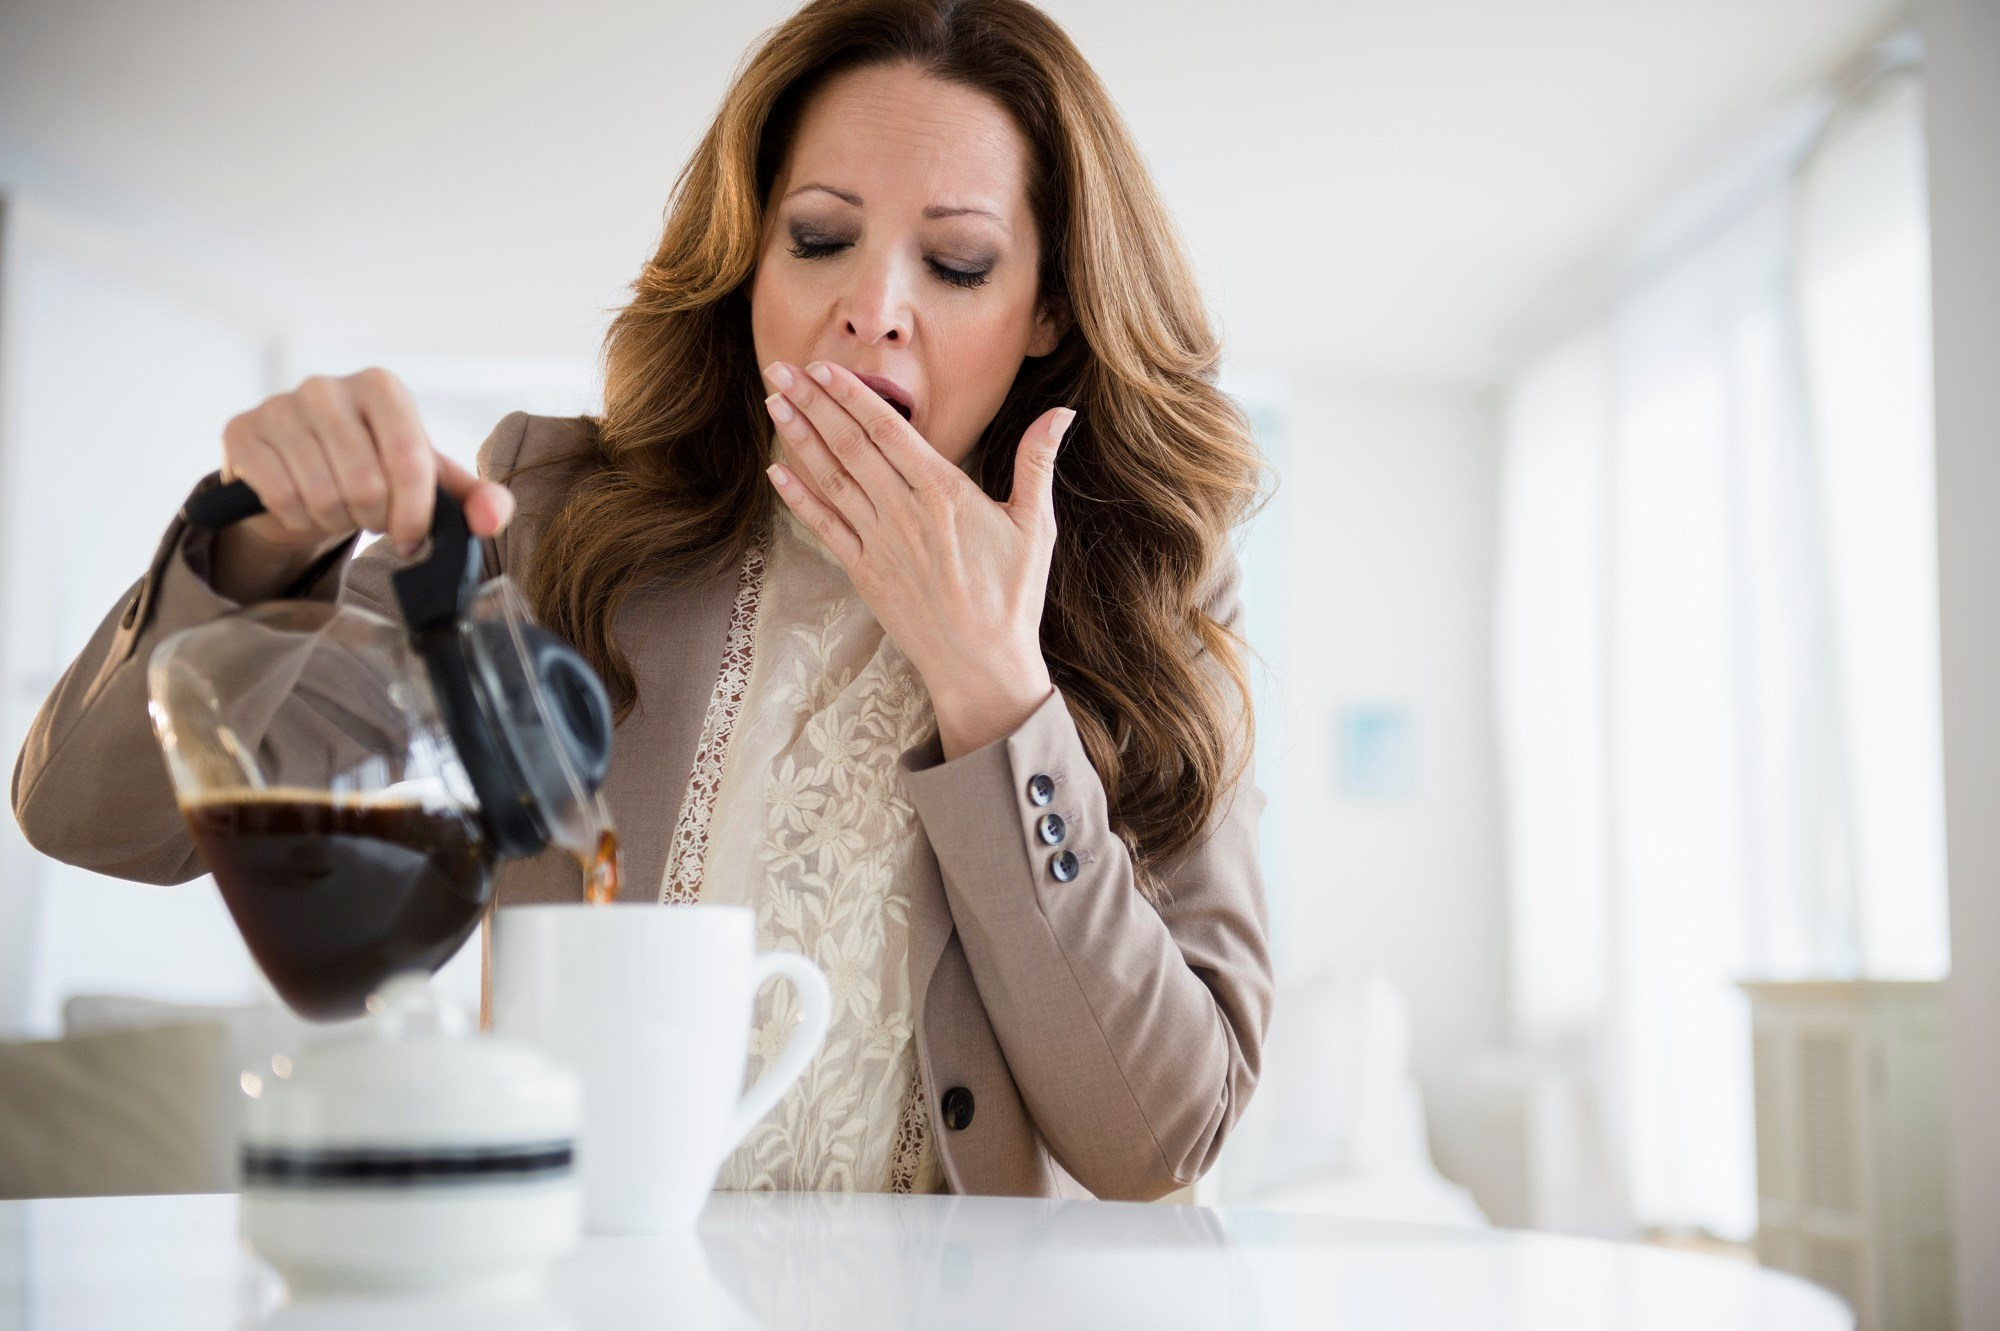 Might Coffee Be Causing Your Poor Sleep?